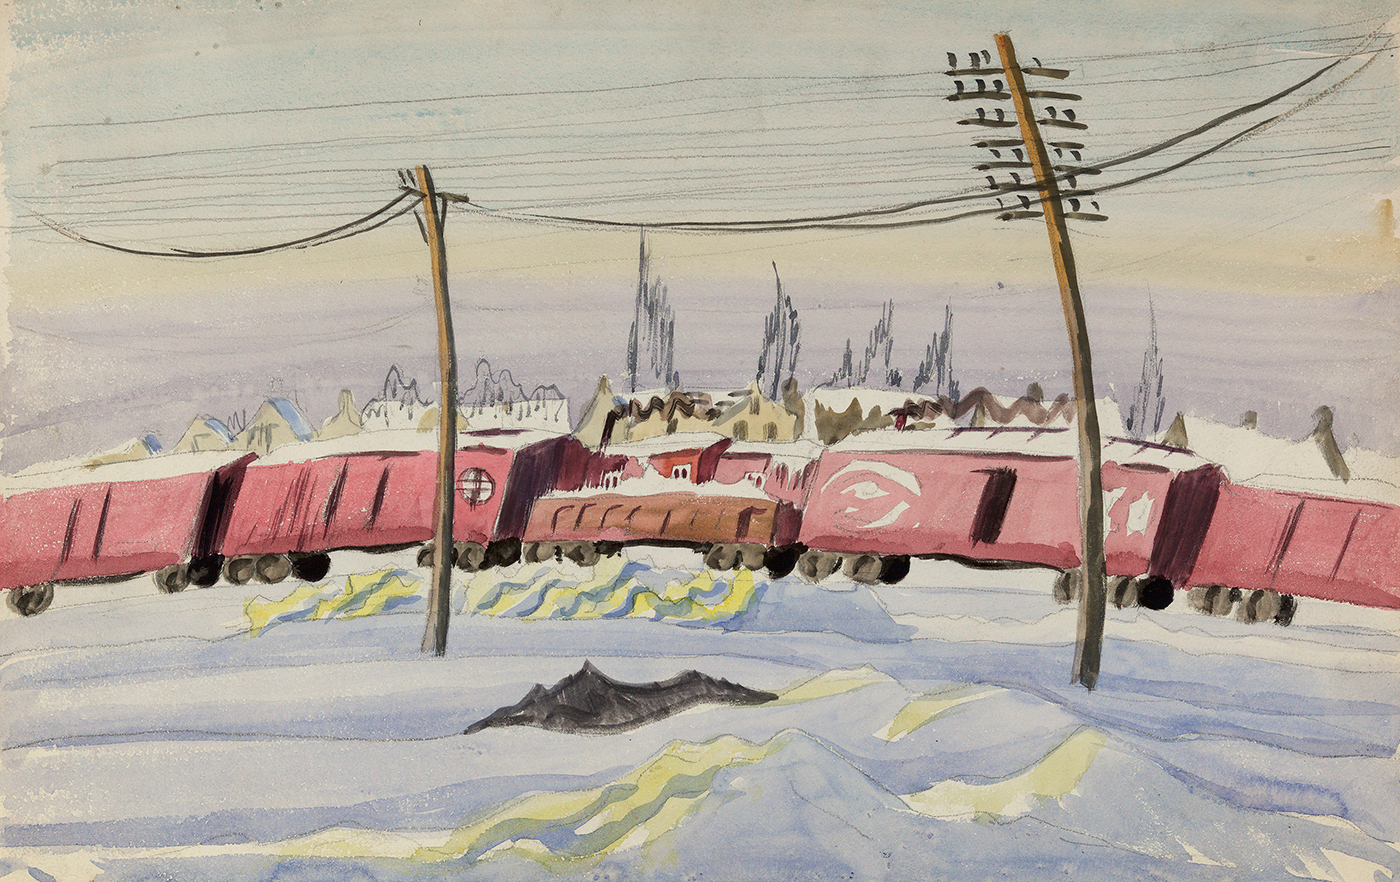 (Untitled) The Freight Train